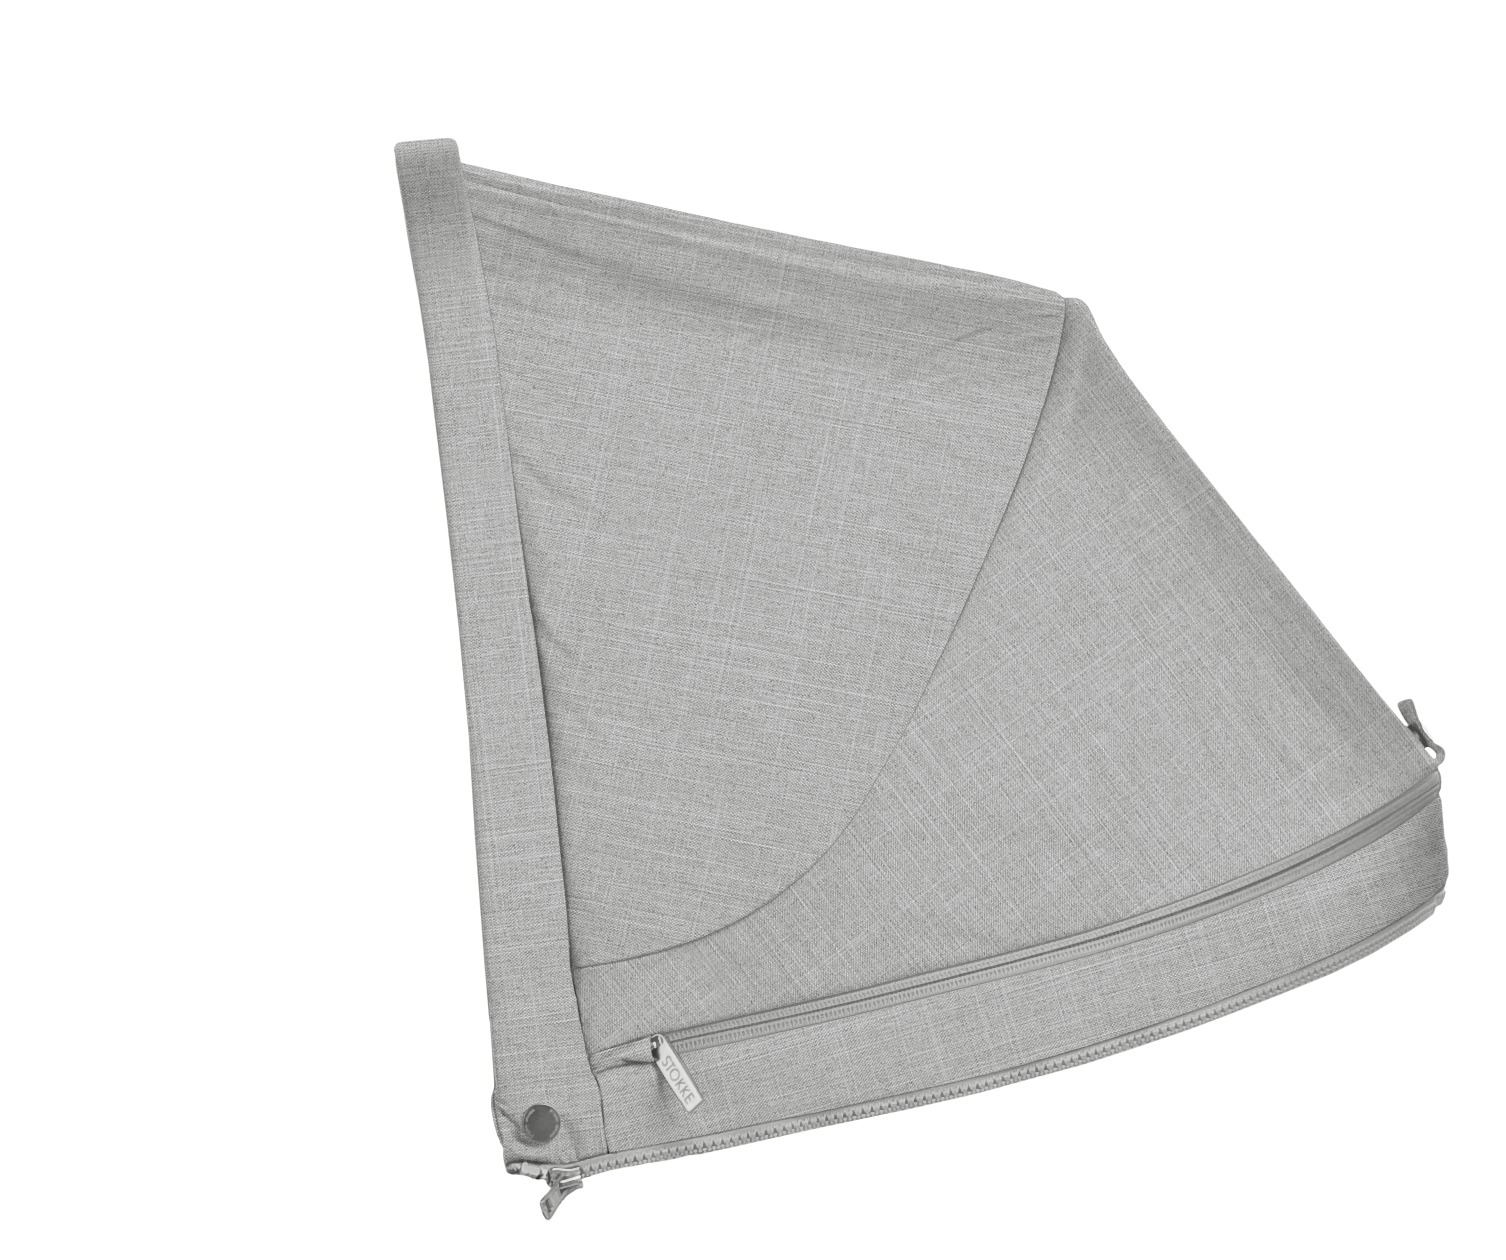 Stokke® Stroller accessories. Hood without cap, Grey Melange (Sparepart).